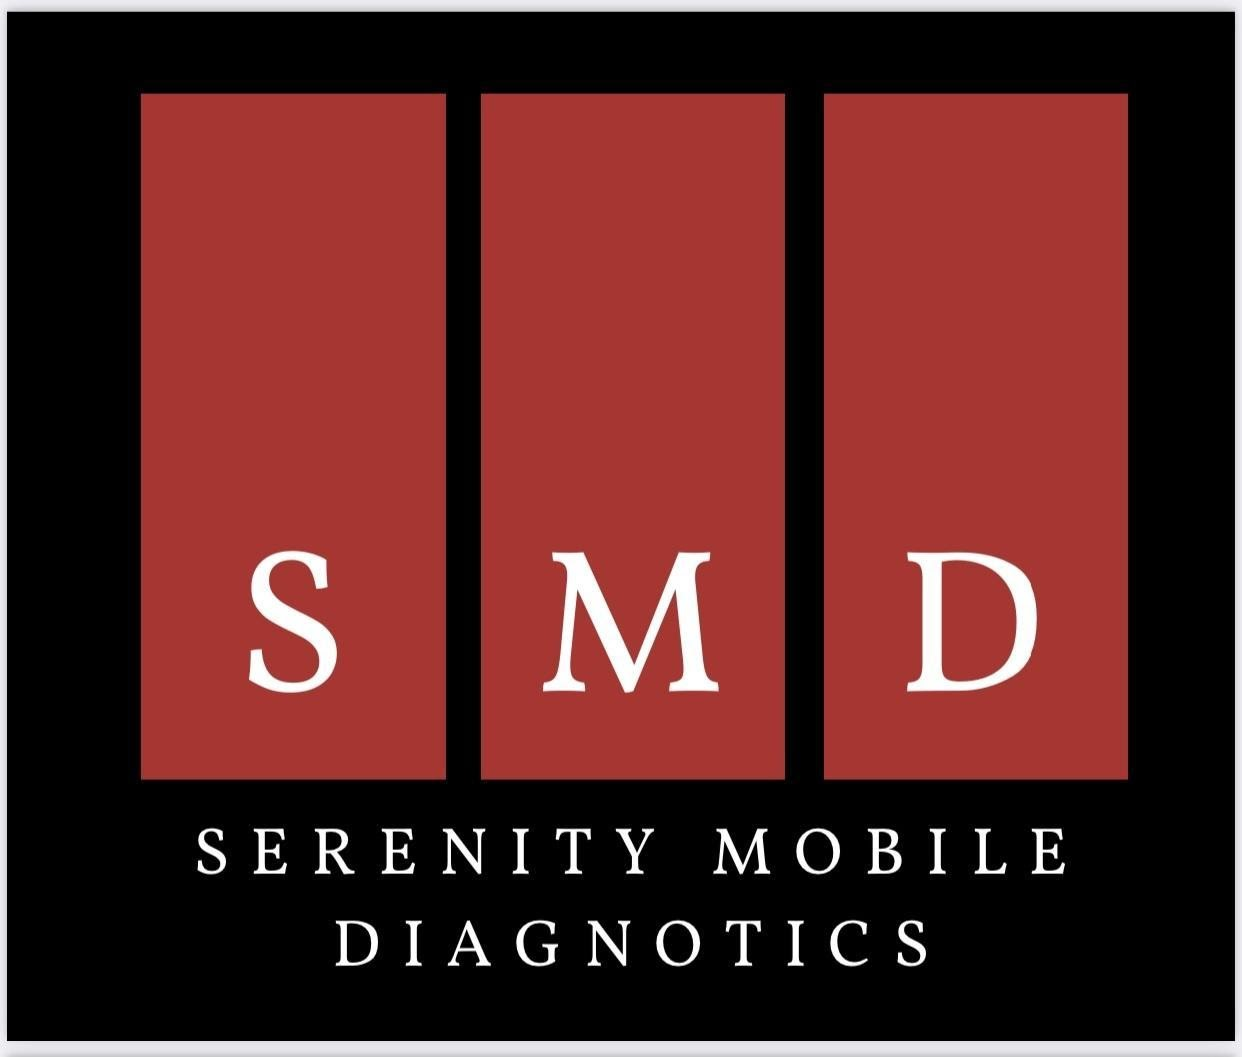 Serenity Diagnostics Announces Mobile Phlebotomy Service in the Bronx, NY